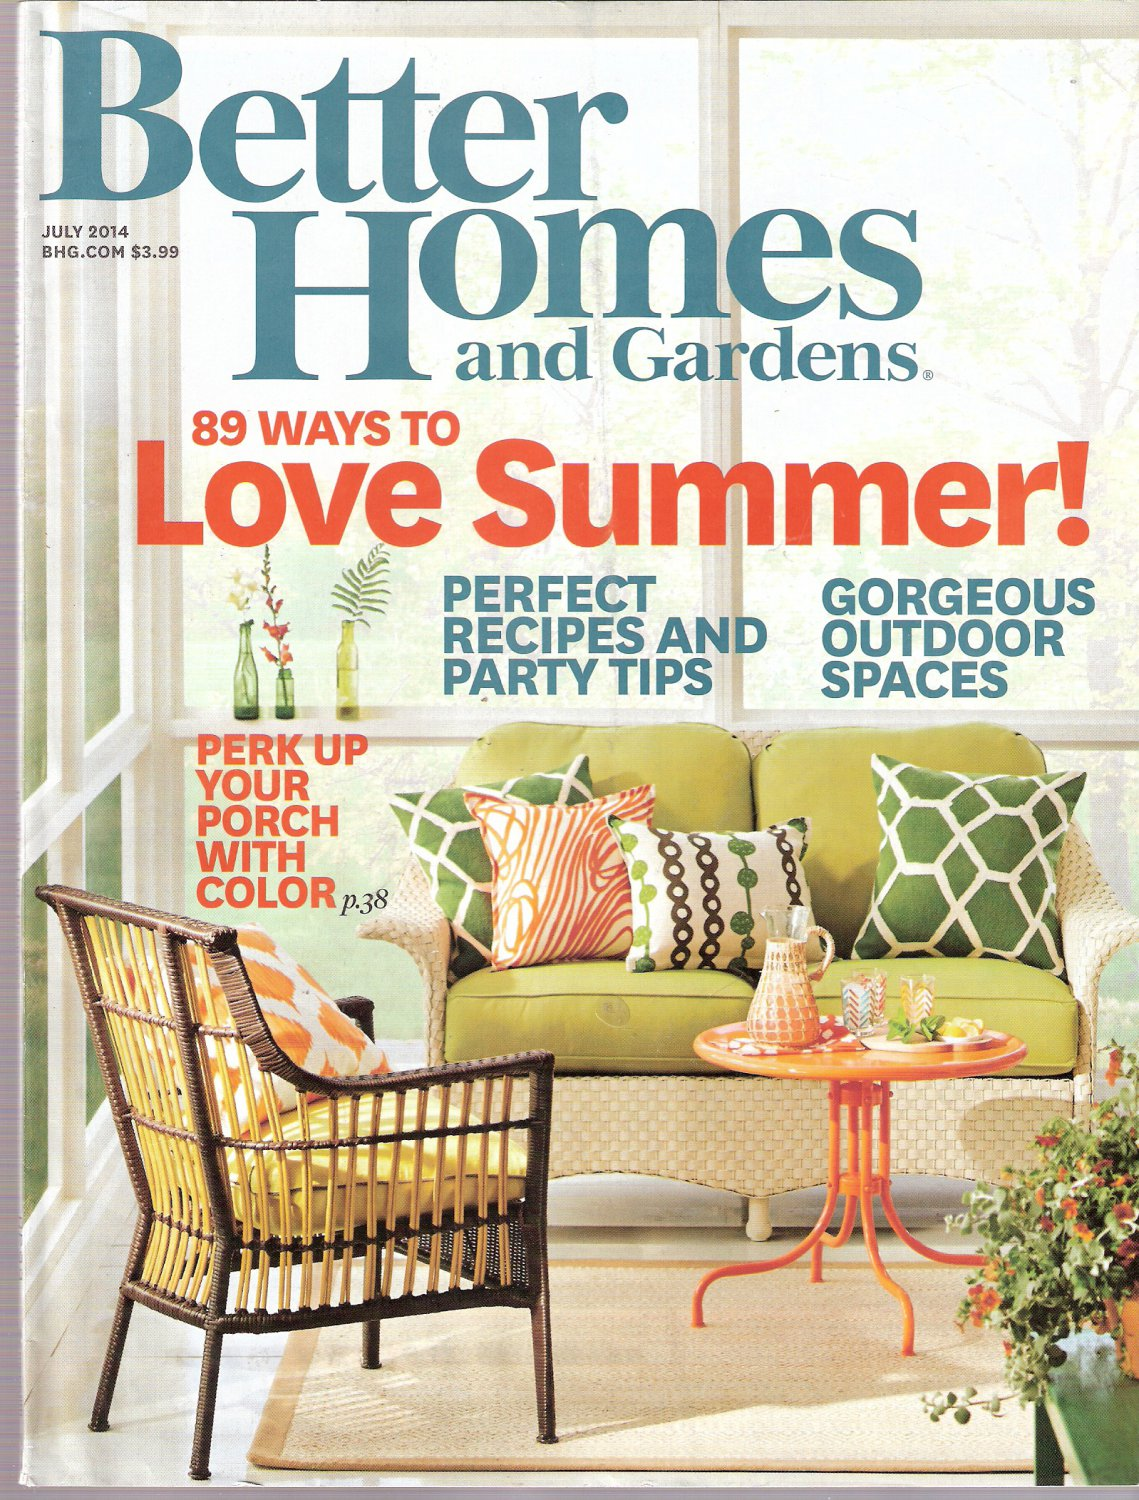 Better Homes and Gardens Magazine July 2014 89 Ways To Love Summer